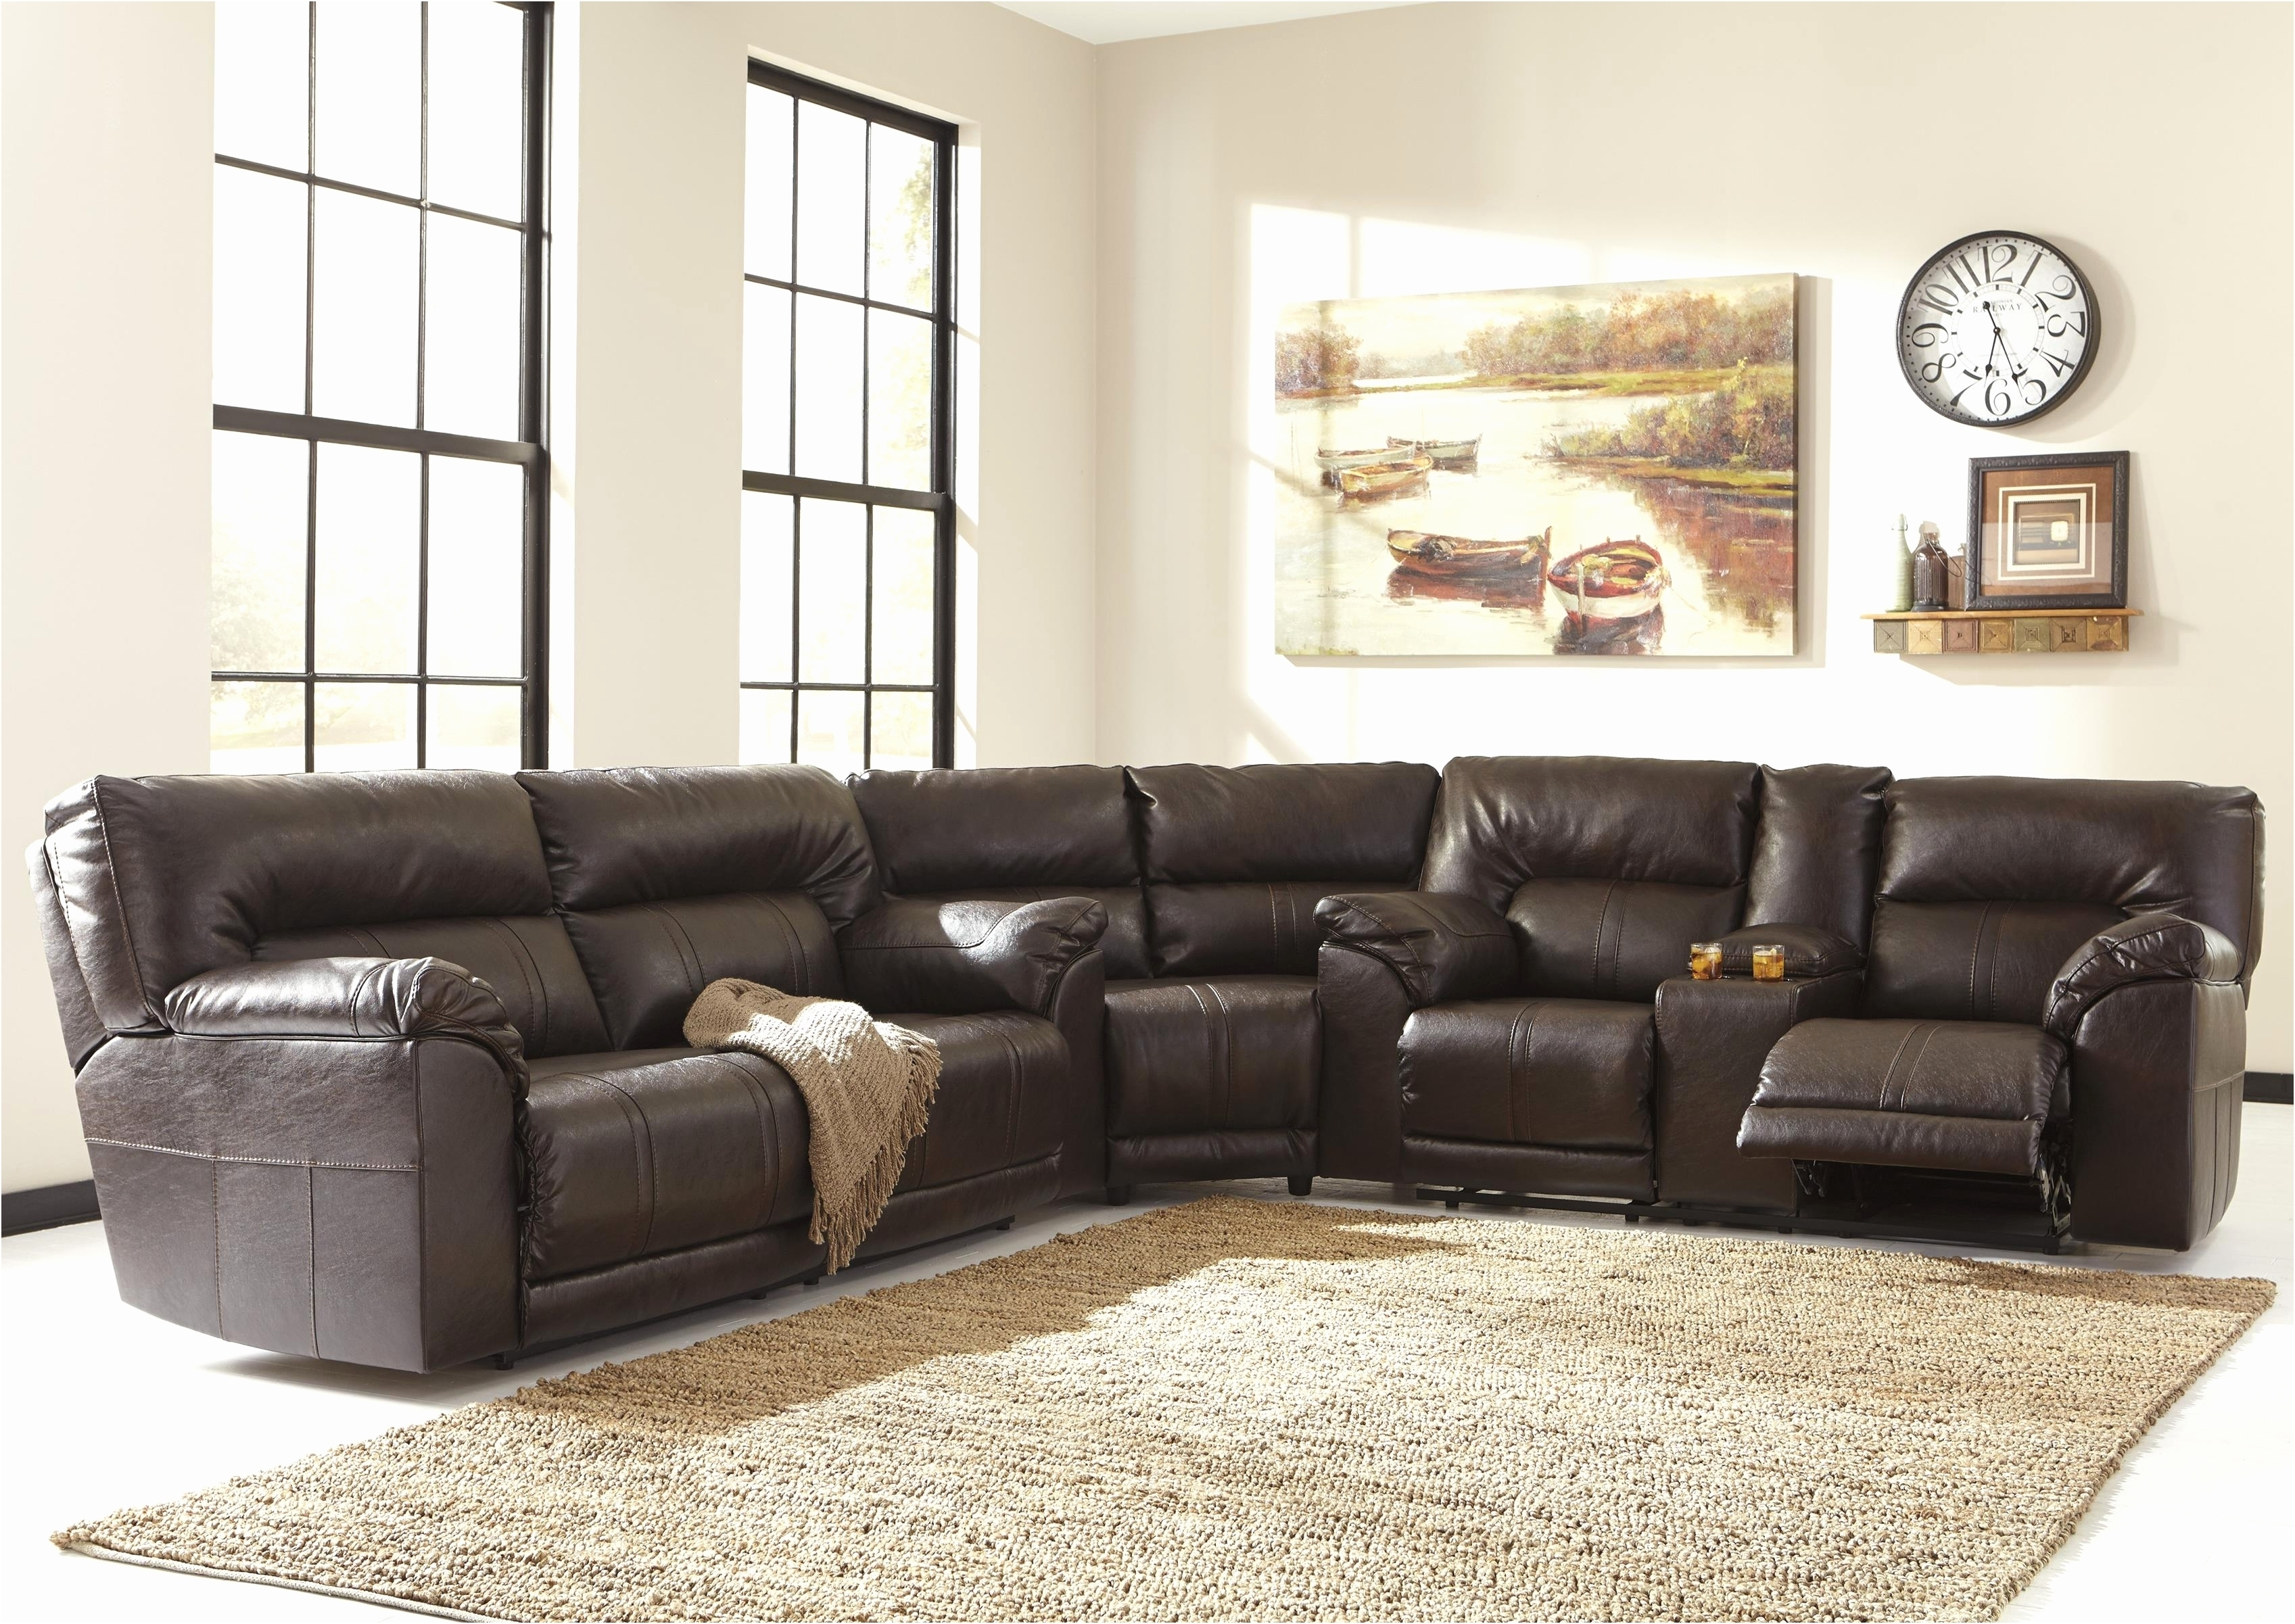 Maryland Sofas Intended For Well Known Incredible Sectional Sofas Maryland – Mediasupload (View 10 of 15)